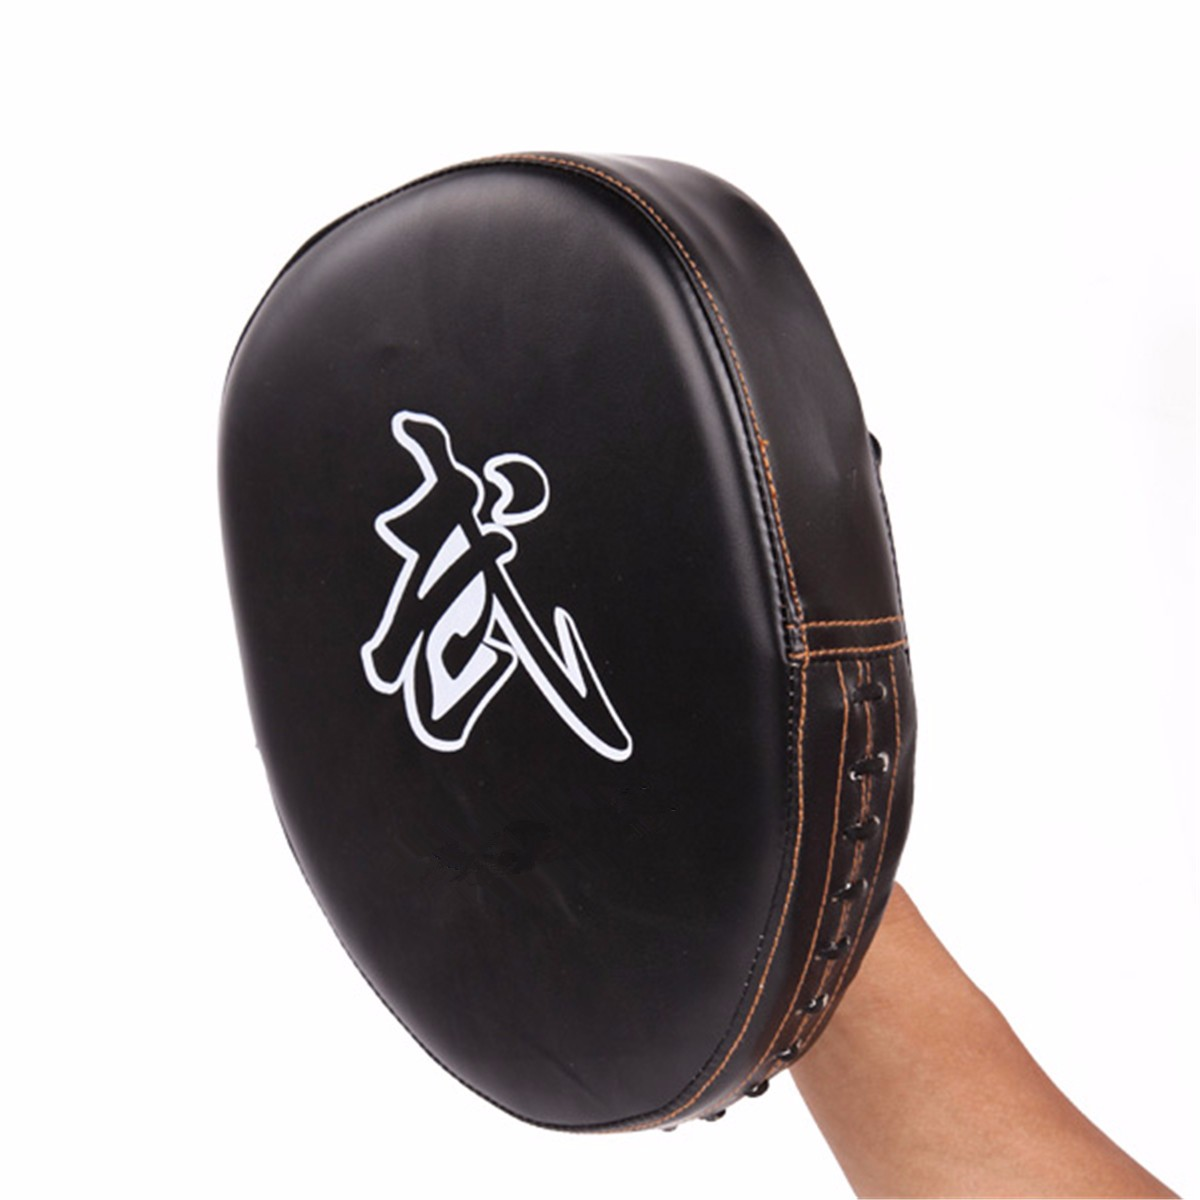 Workout Gloves Target: Fitness Sports Boxing Mitts Gym Training Coaching Target